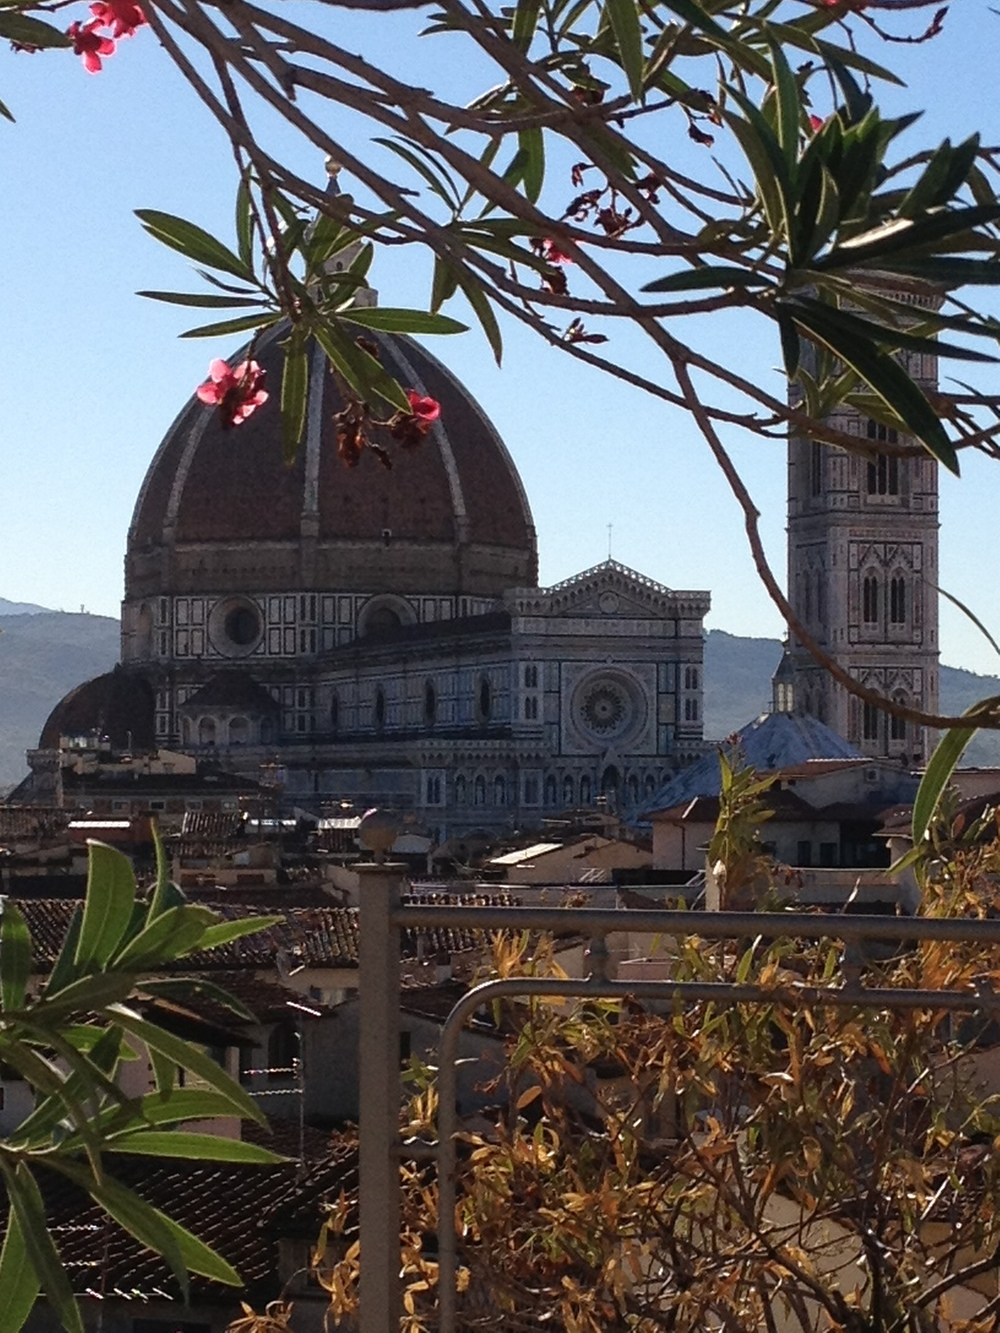 Duomo/Brunelleschi's dome from rooftop of Grand Hotel Baglioni